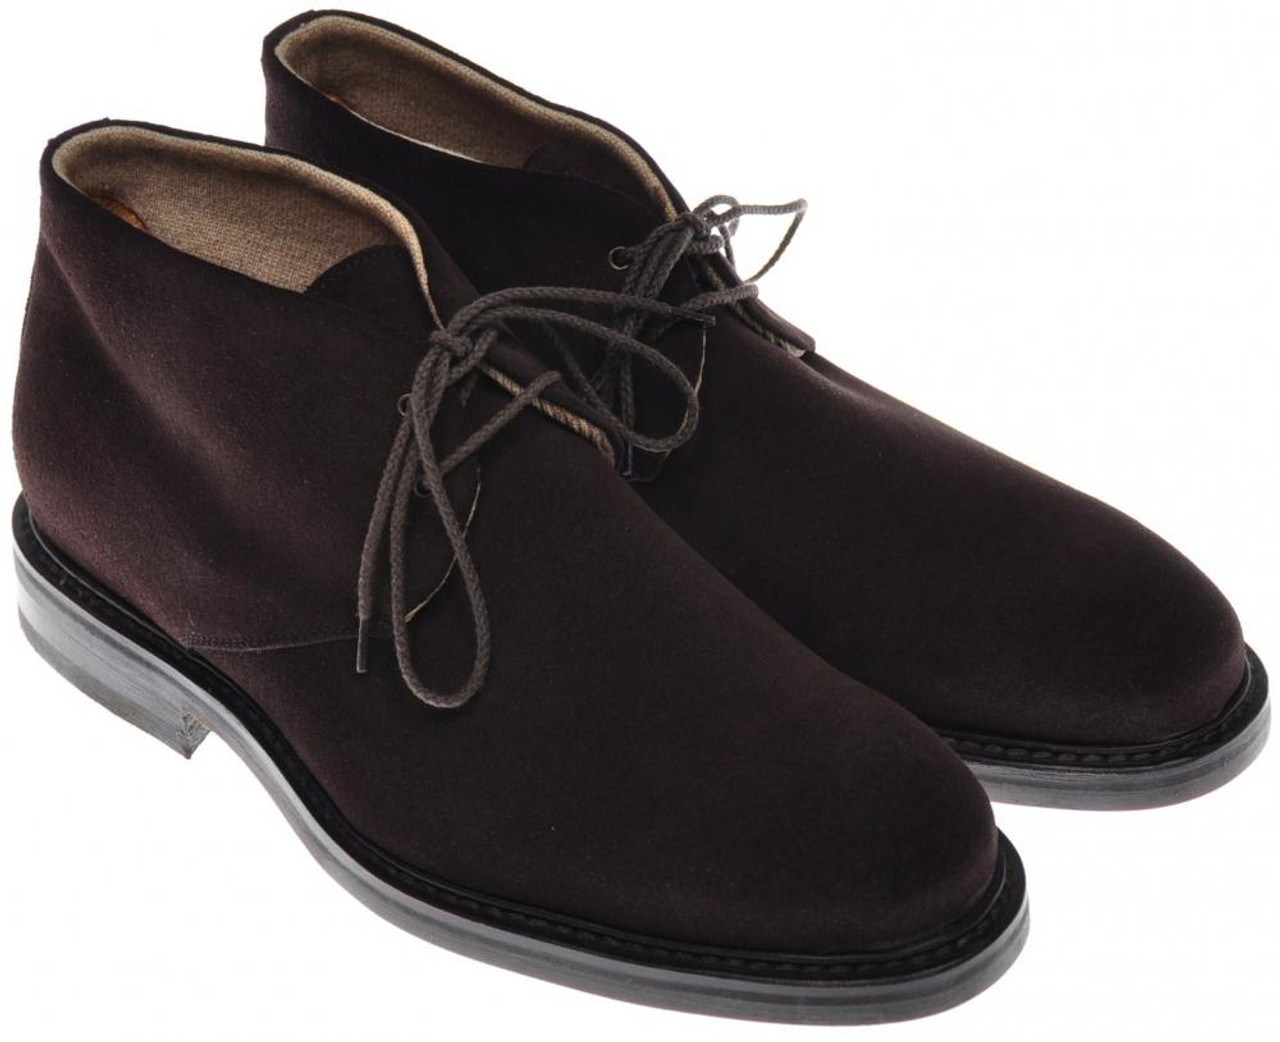 Di Mella Chukka Boots Suede Leather Cashmere Lined 8 Uk 9 Us Brown